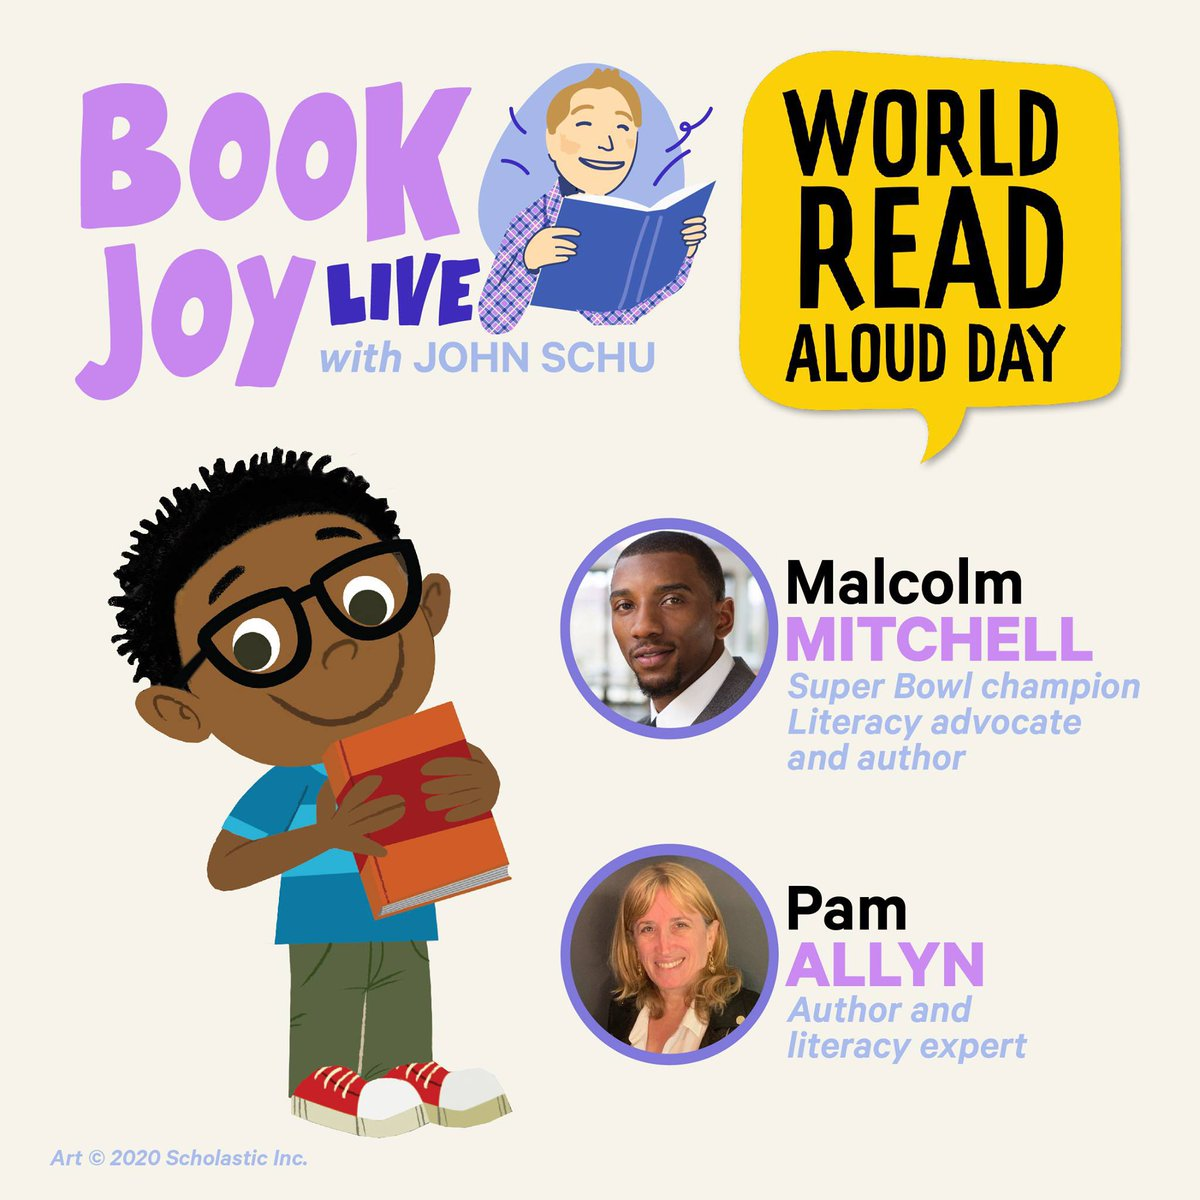 . @pamallyn and @MalcolmJarod discussed World Read Aloud Day during yesterday's episode of Book Joy Live: